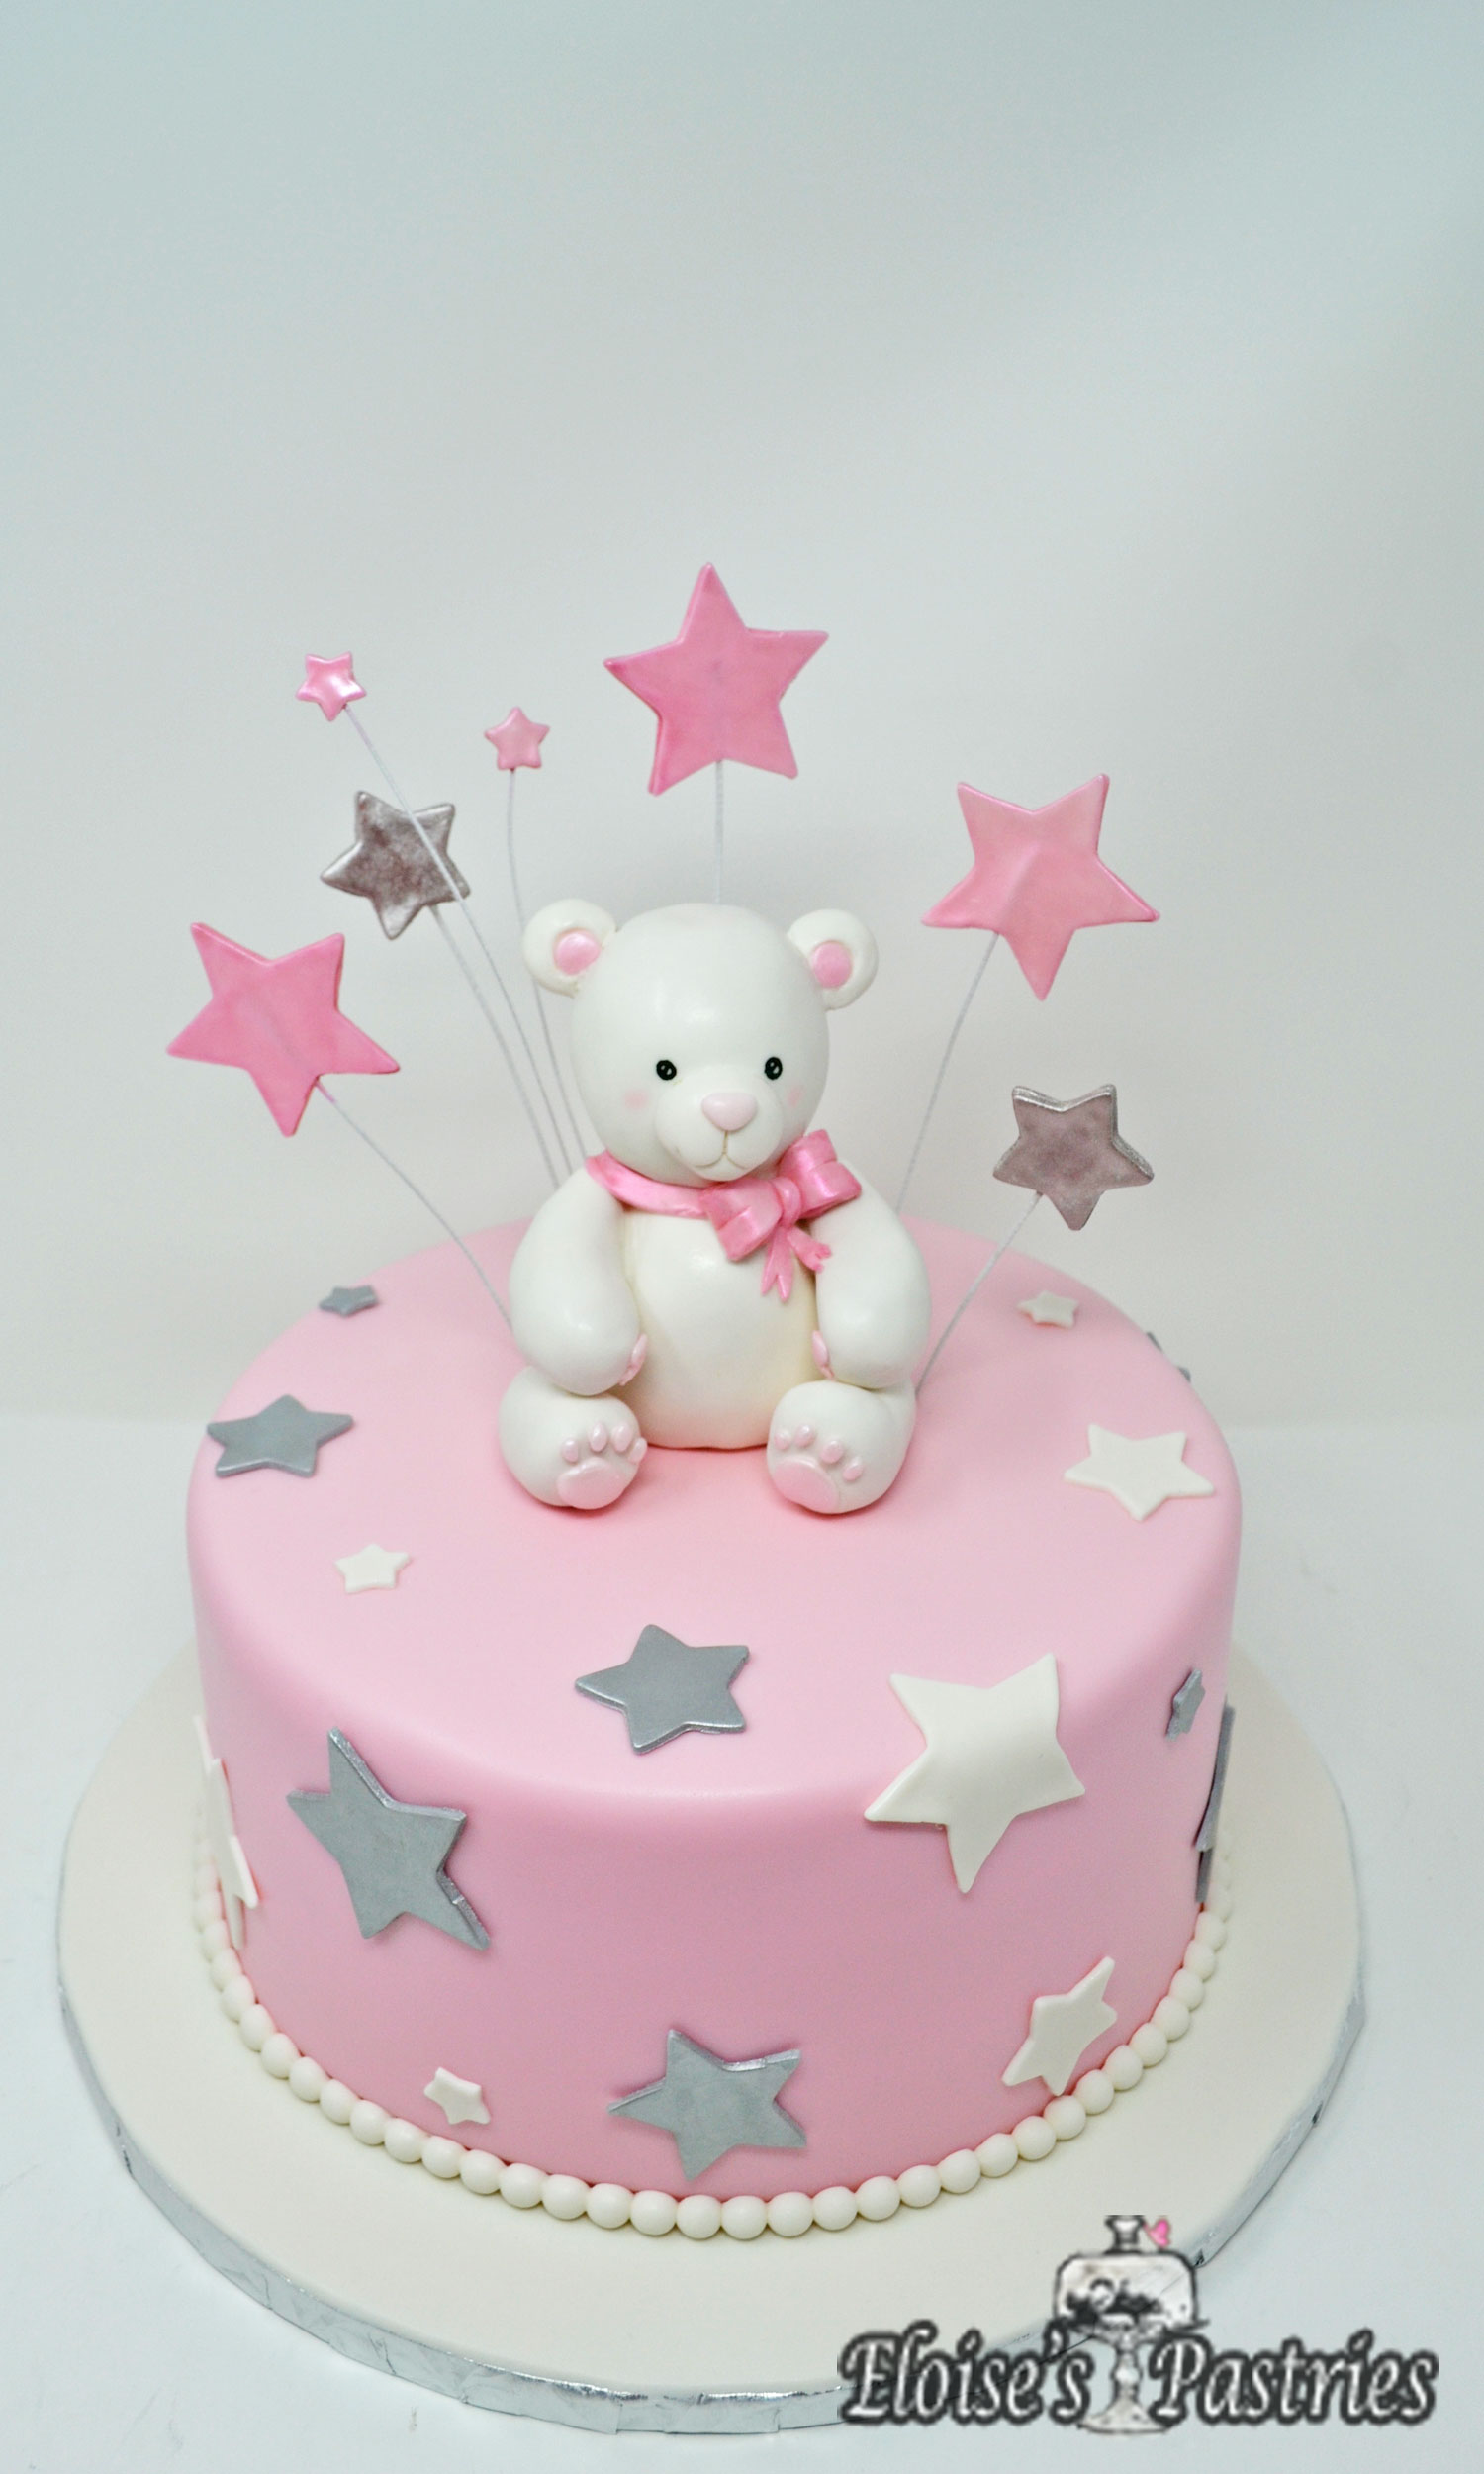 Baby Shower Cakes for Her -- White Teddy Bear & Stars